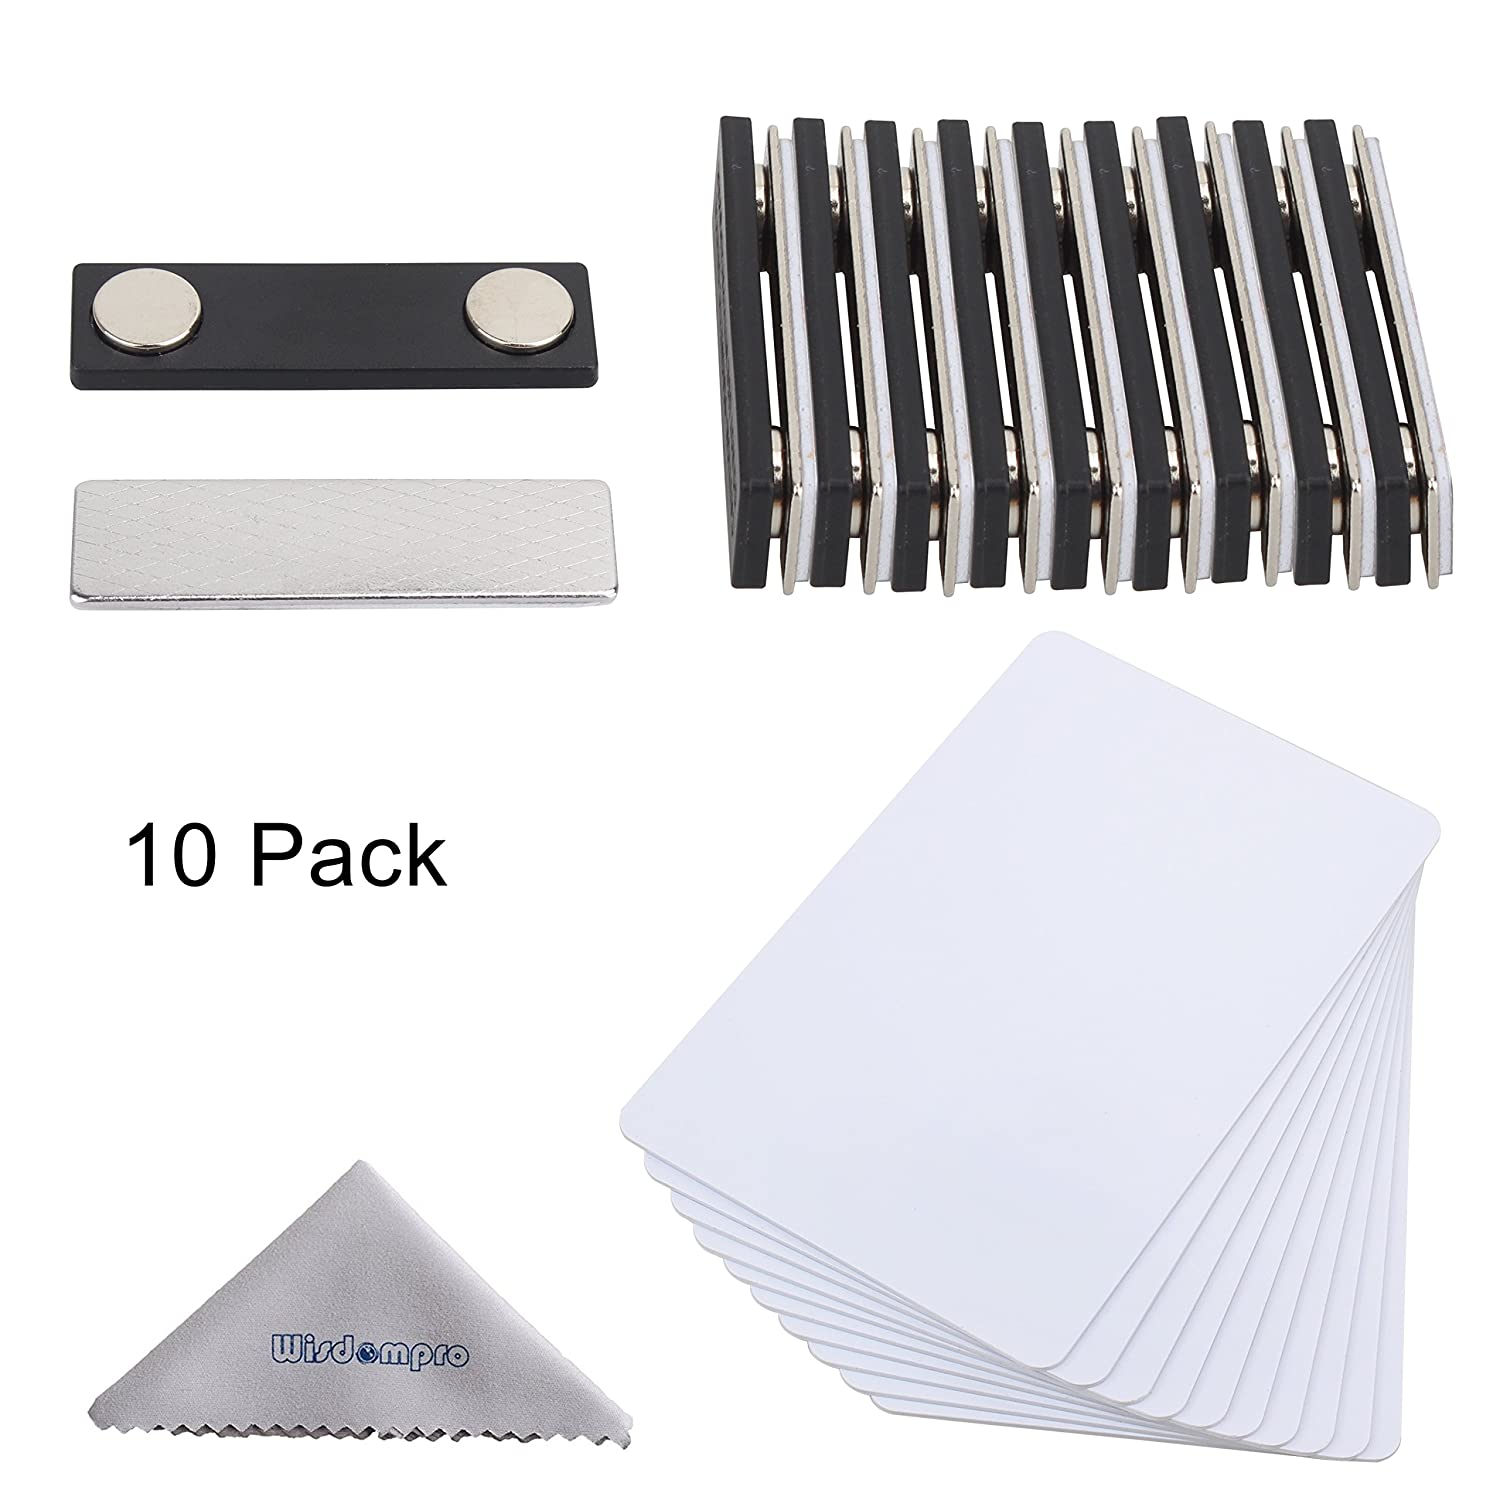 DIY Name Badges, Wisdompro® 10 Set White Printable Blank PVC Badges (3-3/8 x 2-1/8) with Magnetic Name Tag For Jacket, Lapel,or Shirt - No Holes in your Fine Jackets or Shirts 38418